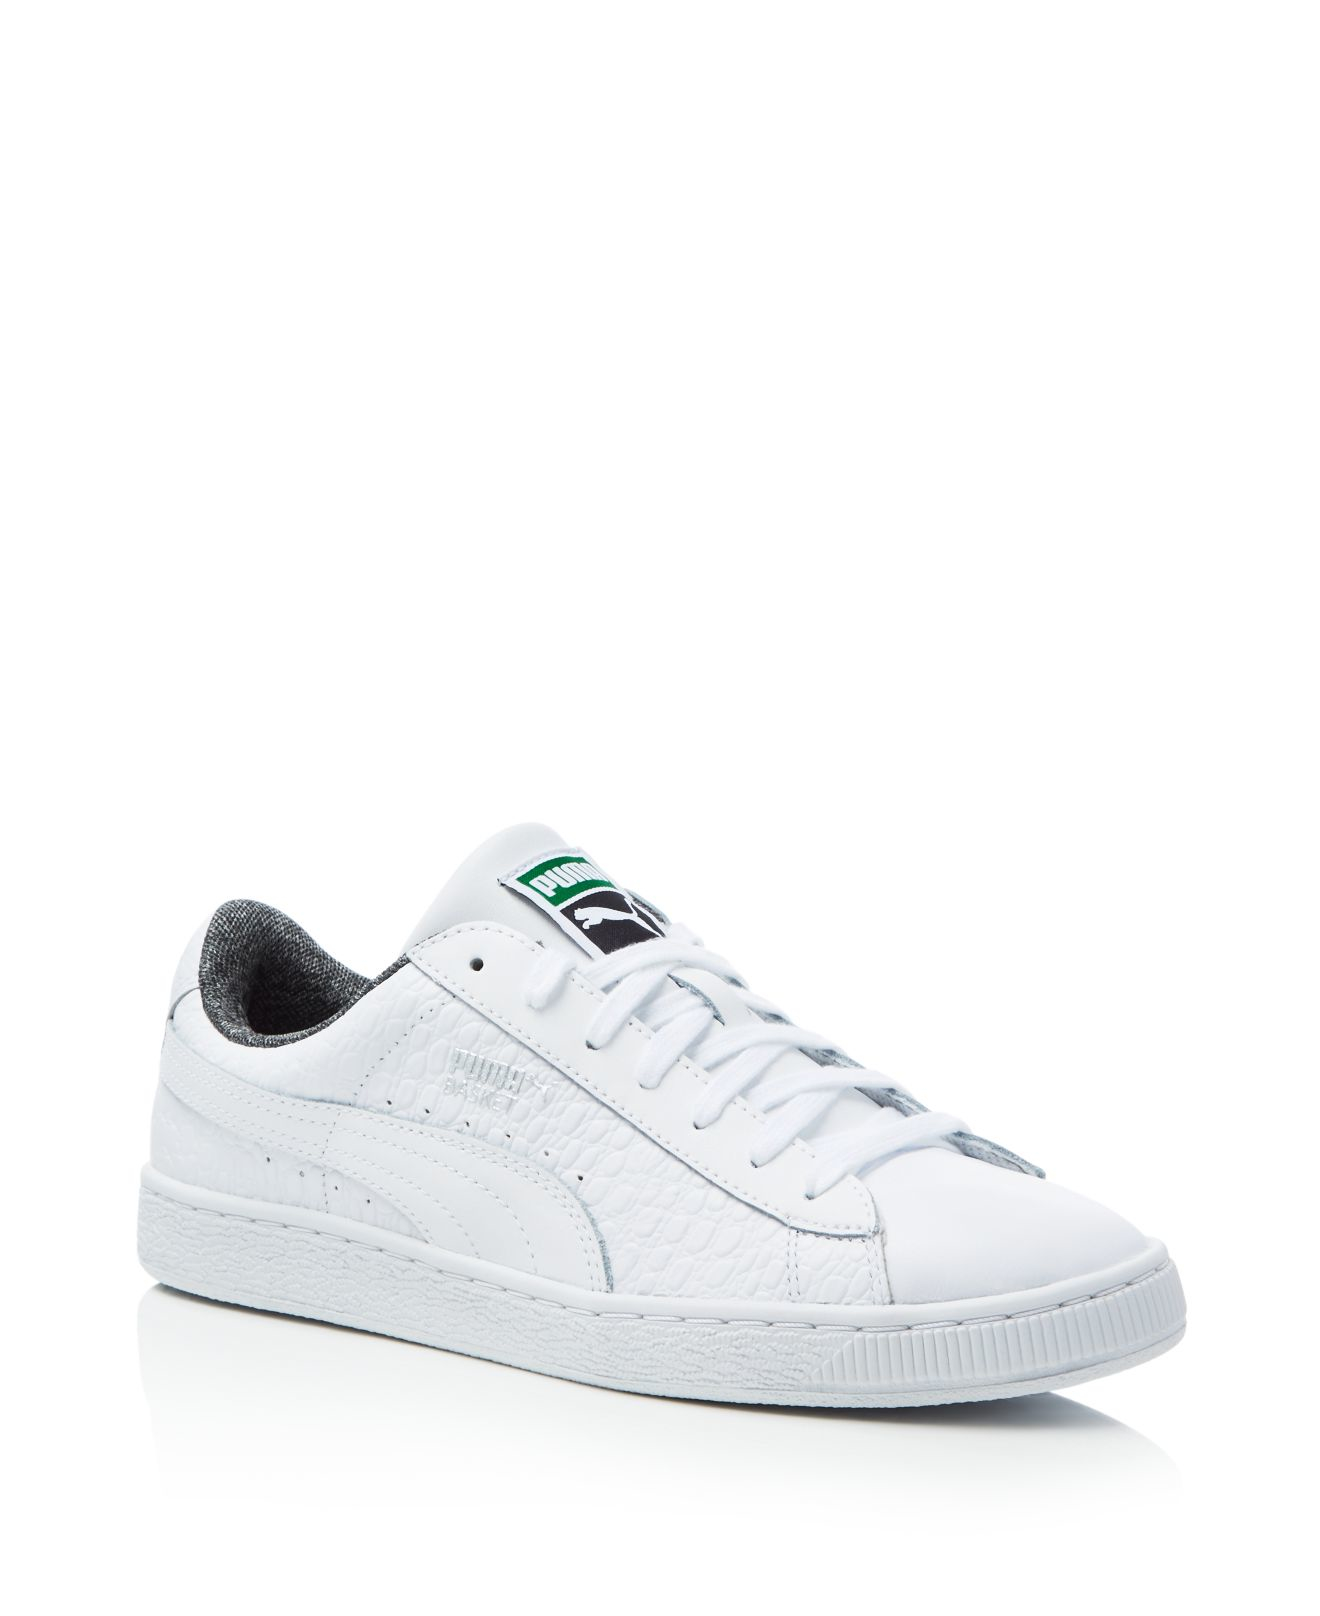 puma men 39 s basket classic textured lace up sneakers in white for men lyst. Black Bedroom Furniture Sets. Home Design Ideas